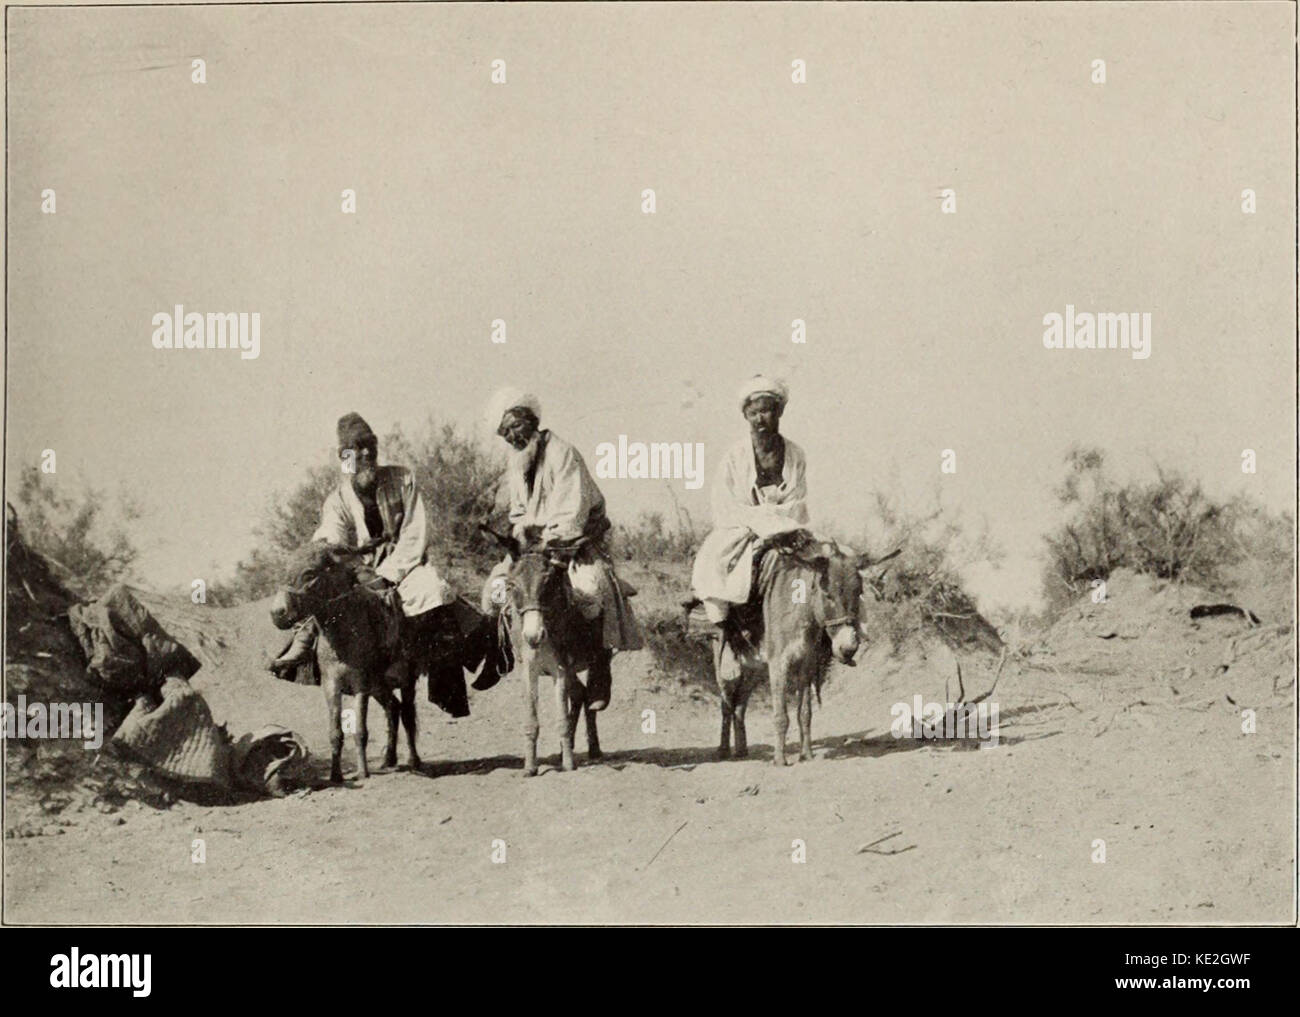 'Ruins of desert Cathay : personal narrative of explorations in Central Asia and westernmost China' (1912) - Stock Image